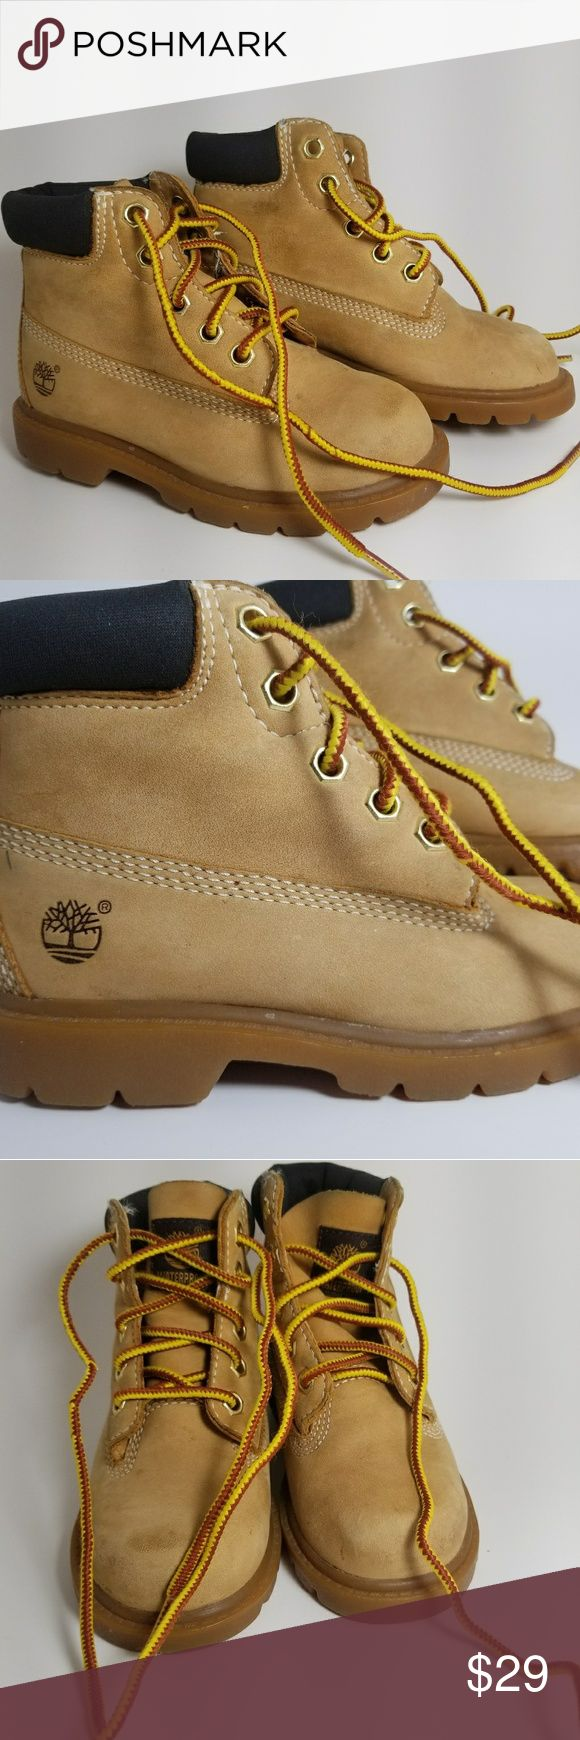 Kids Timberland Boots Boys Timberland Boots Wheat color Waterproof Size 9M Pre owned, Good Condition Same or Next Day shipping Timberland Shoes Boots